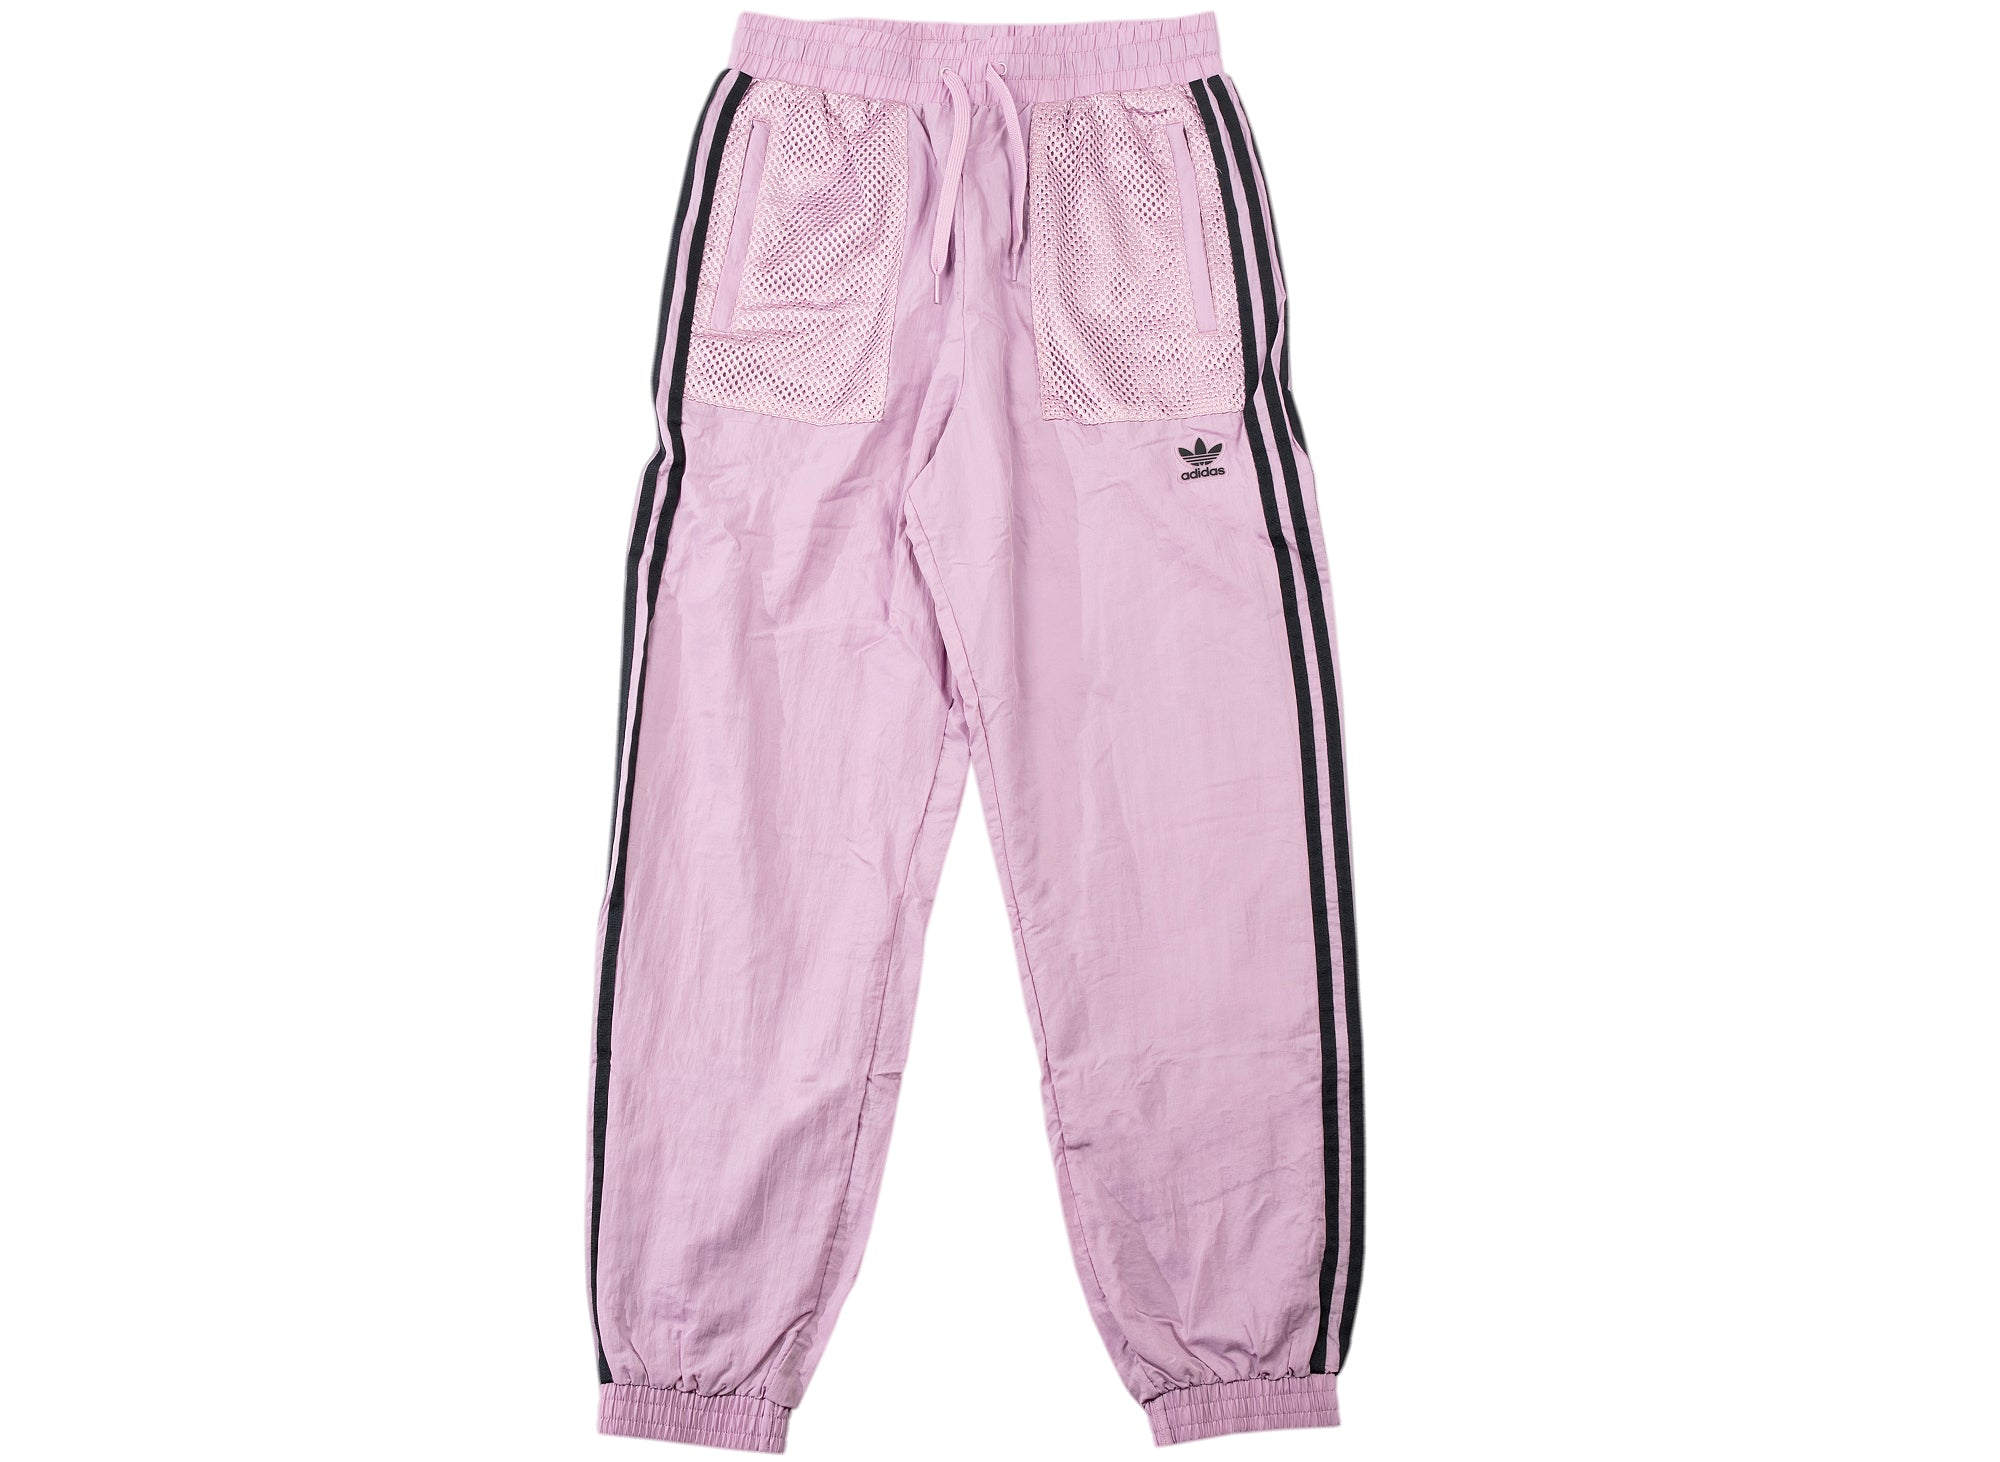 Pasteles impaciente Definitivo  Adidas Nylon Pants in Red xld - Oneness Boutique